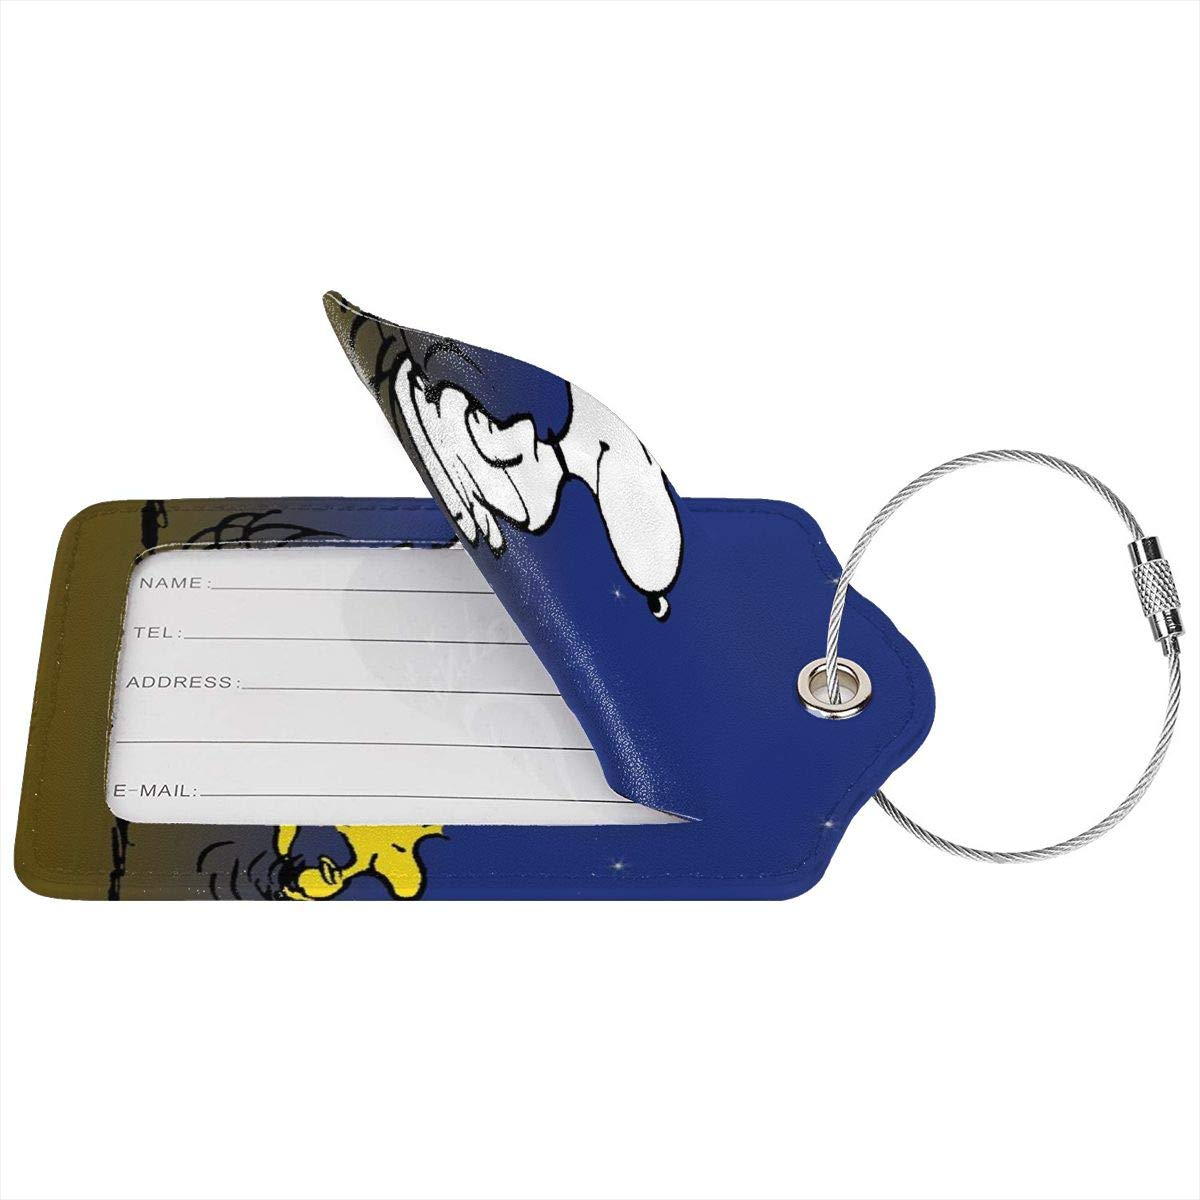 Suit For Travel,Vacation Fashion Snoopy-dancing-in-color Soft Leather Luggage Tags With Privacy Cover 1-4 Pcs Choose